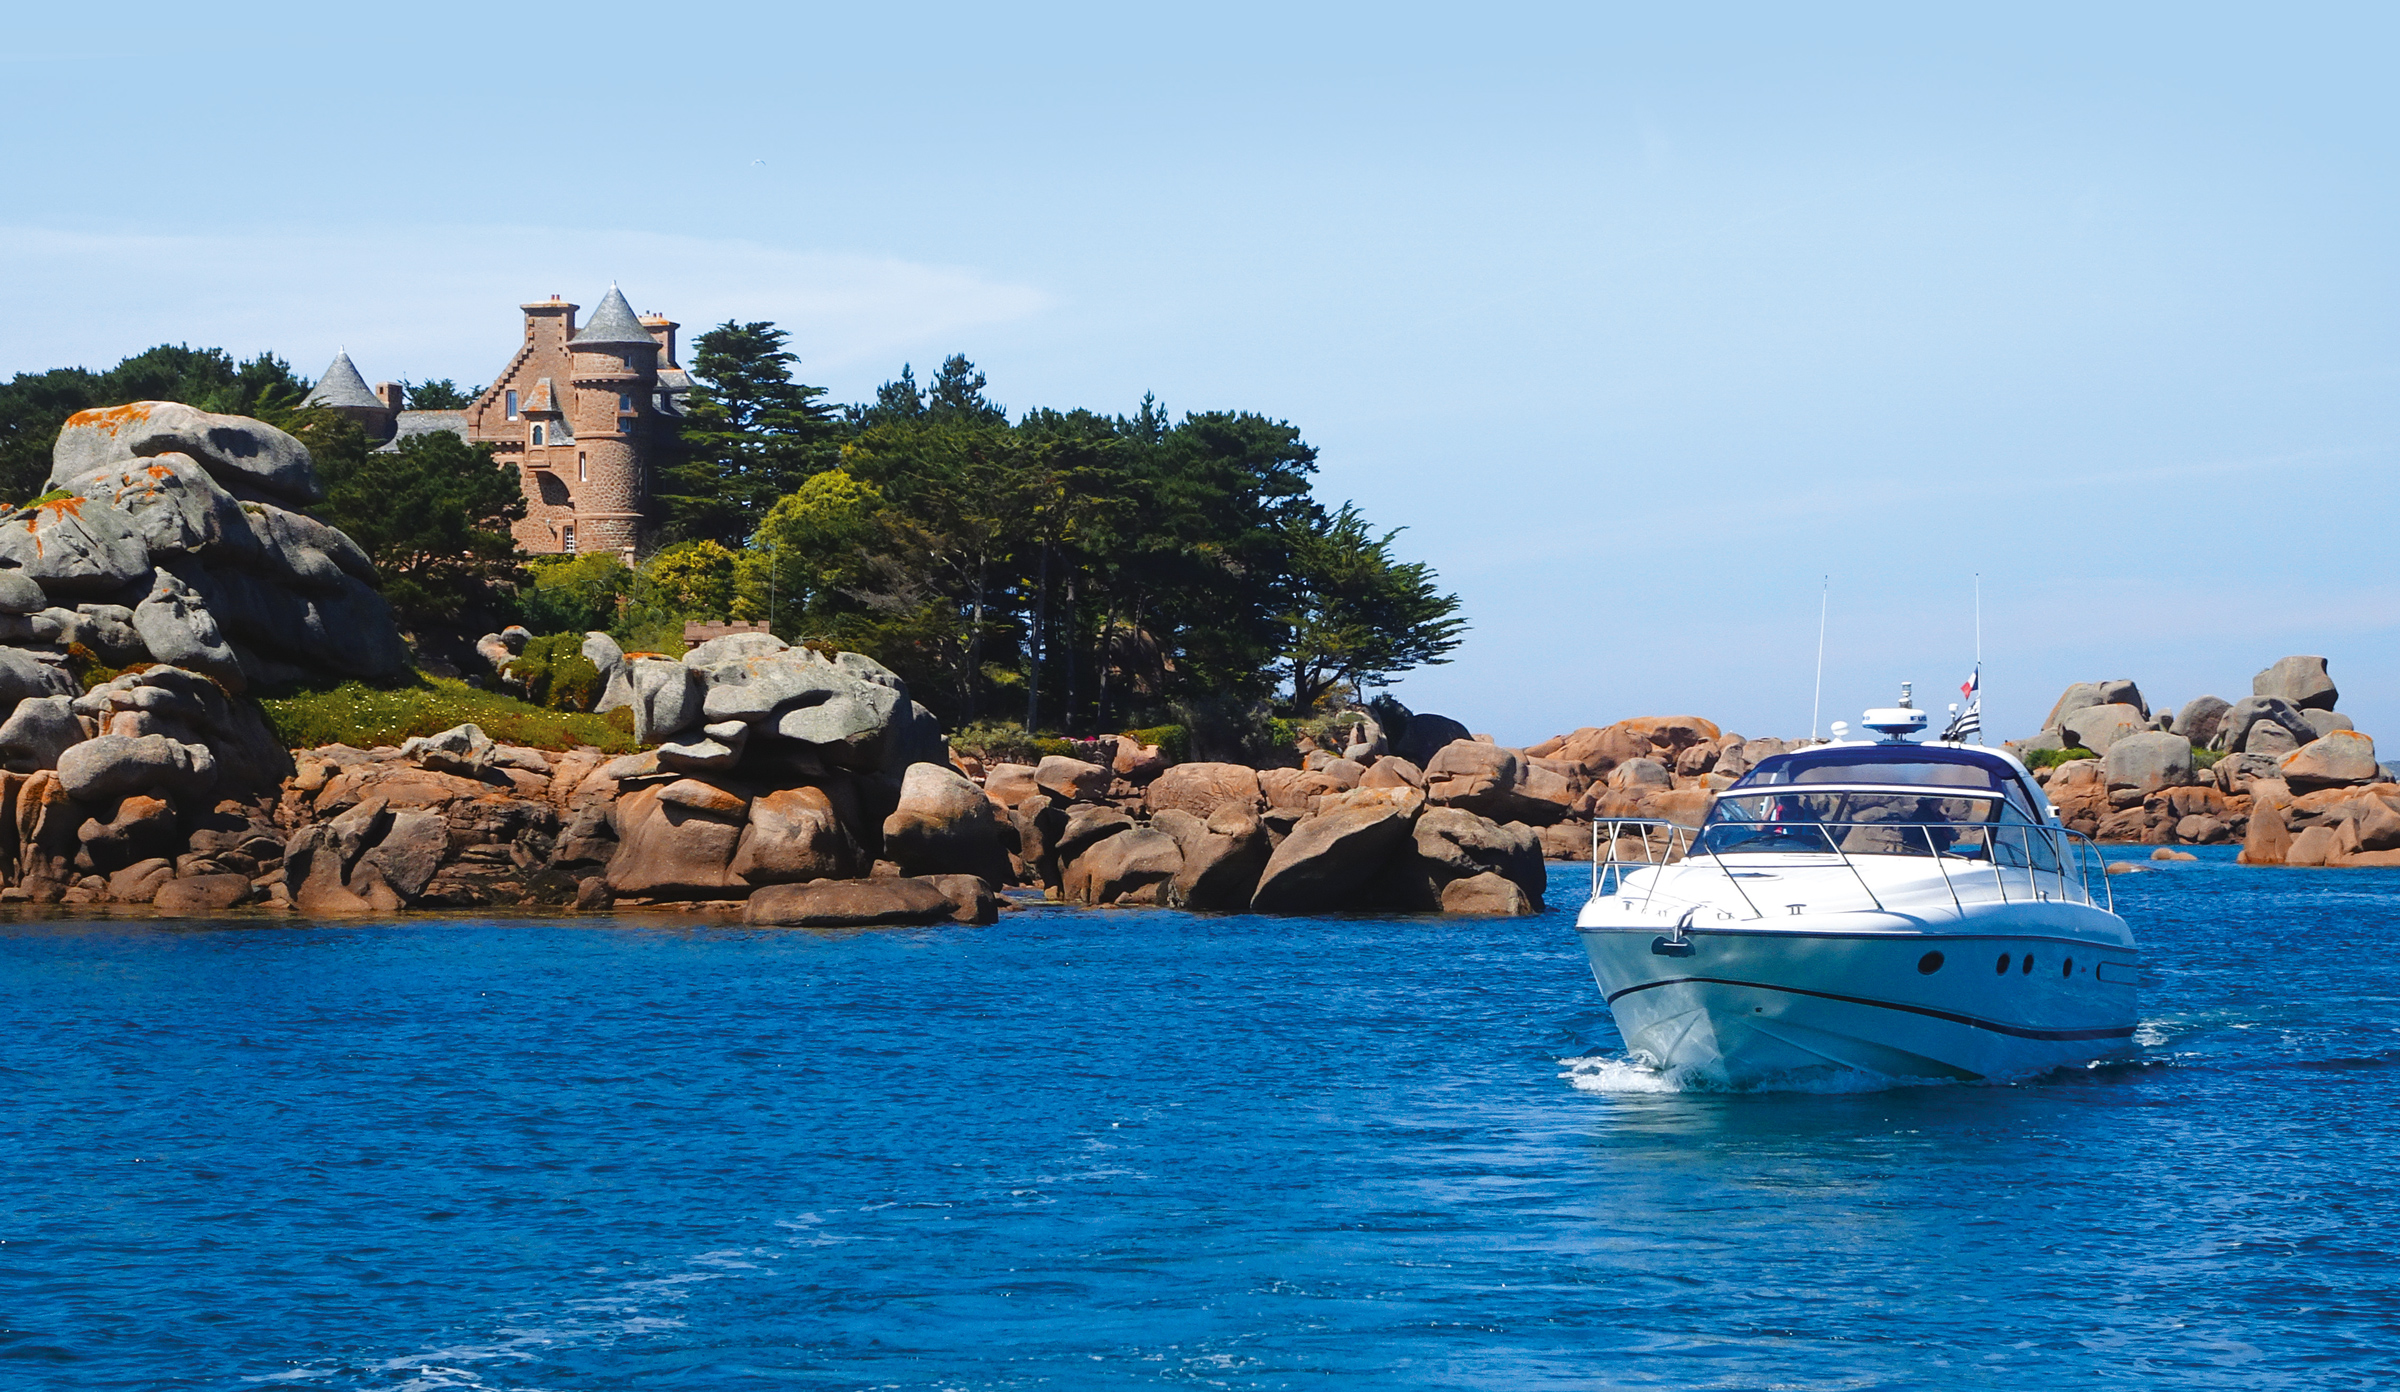 Brittany boating guide: Princess owners explore France's rugged coast